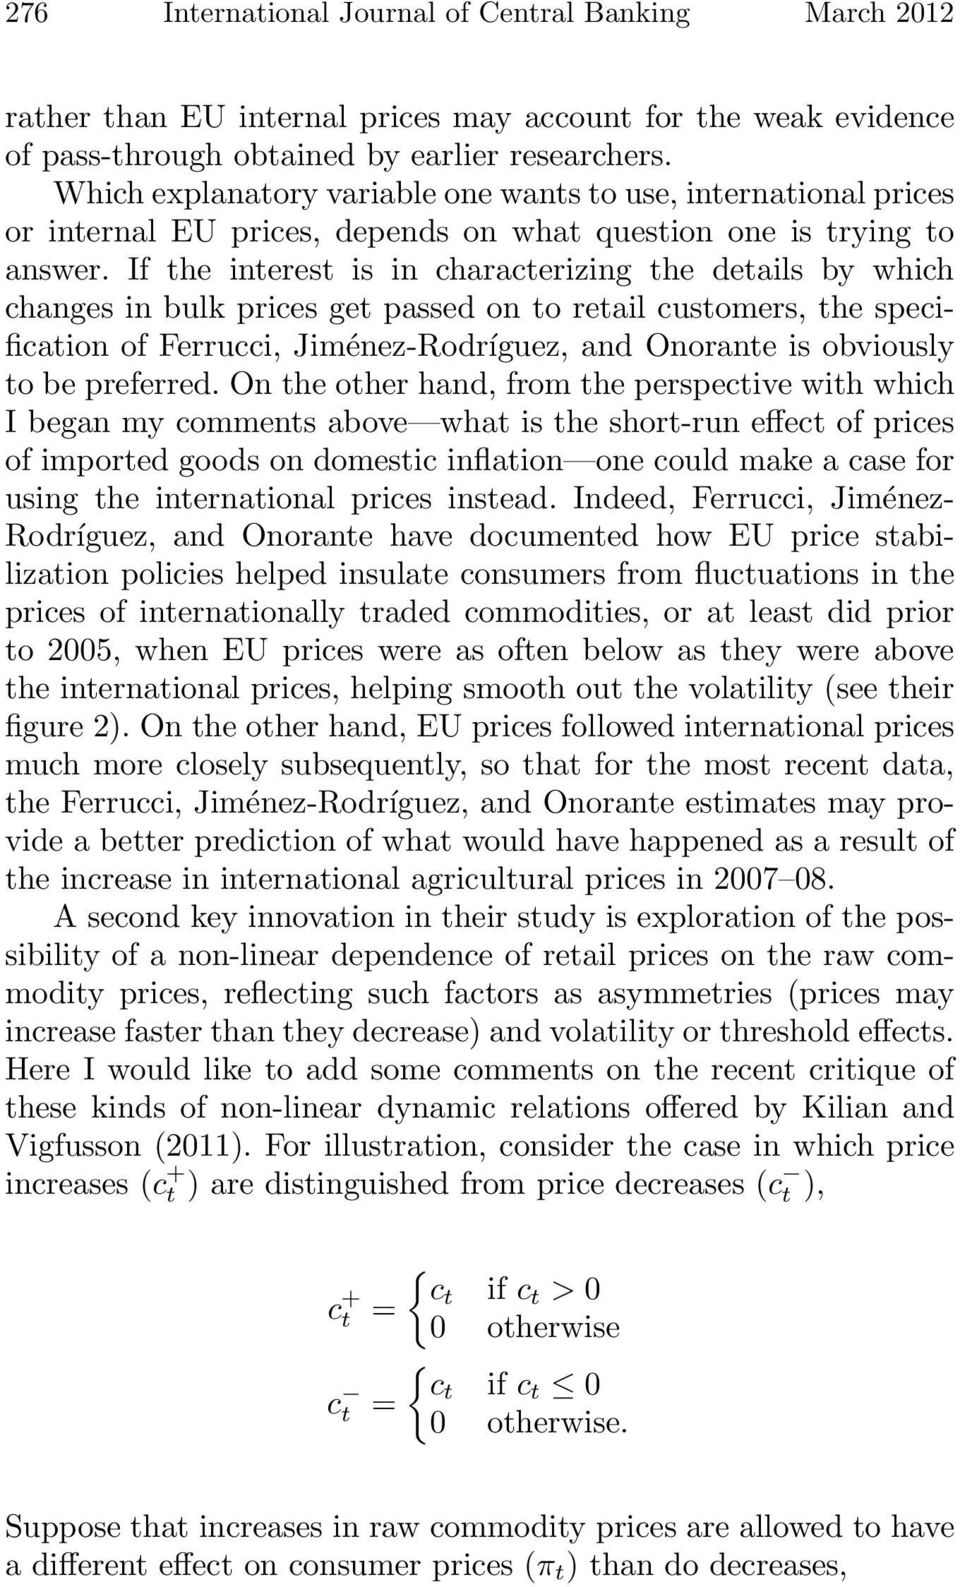 If the interest is in characterizing the details by which changes in bulk prices get passed on to retail customers, the specification of Ferrucci, Jiménez-Rodríguez, and Onorante is obviously to be